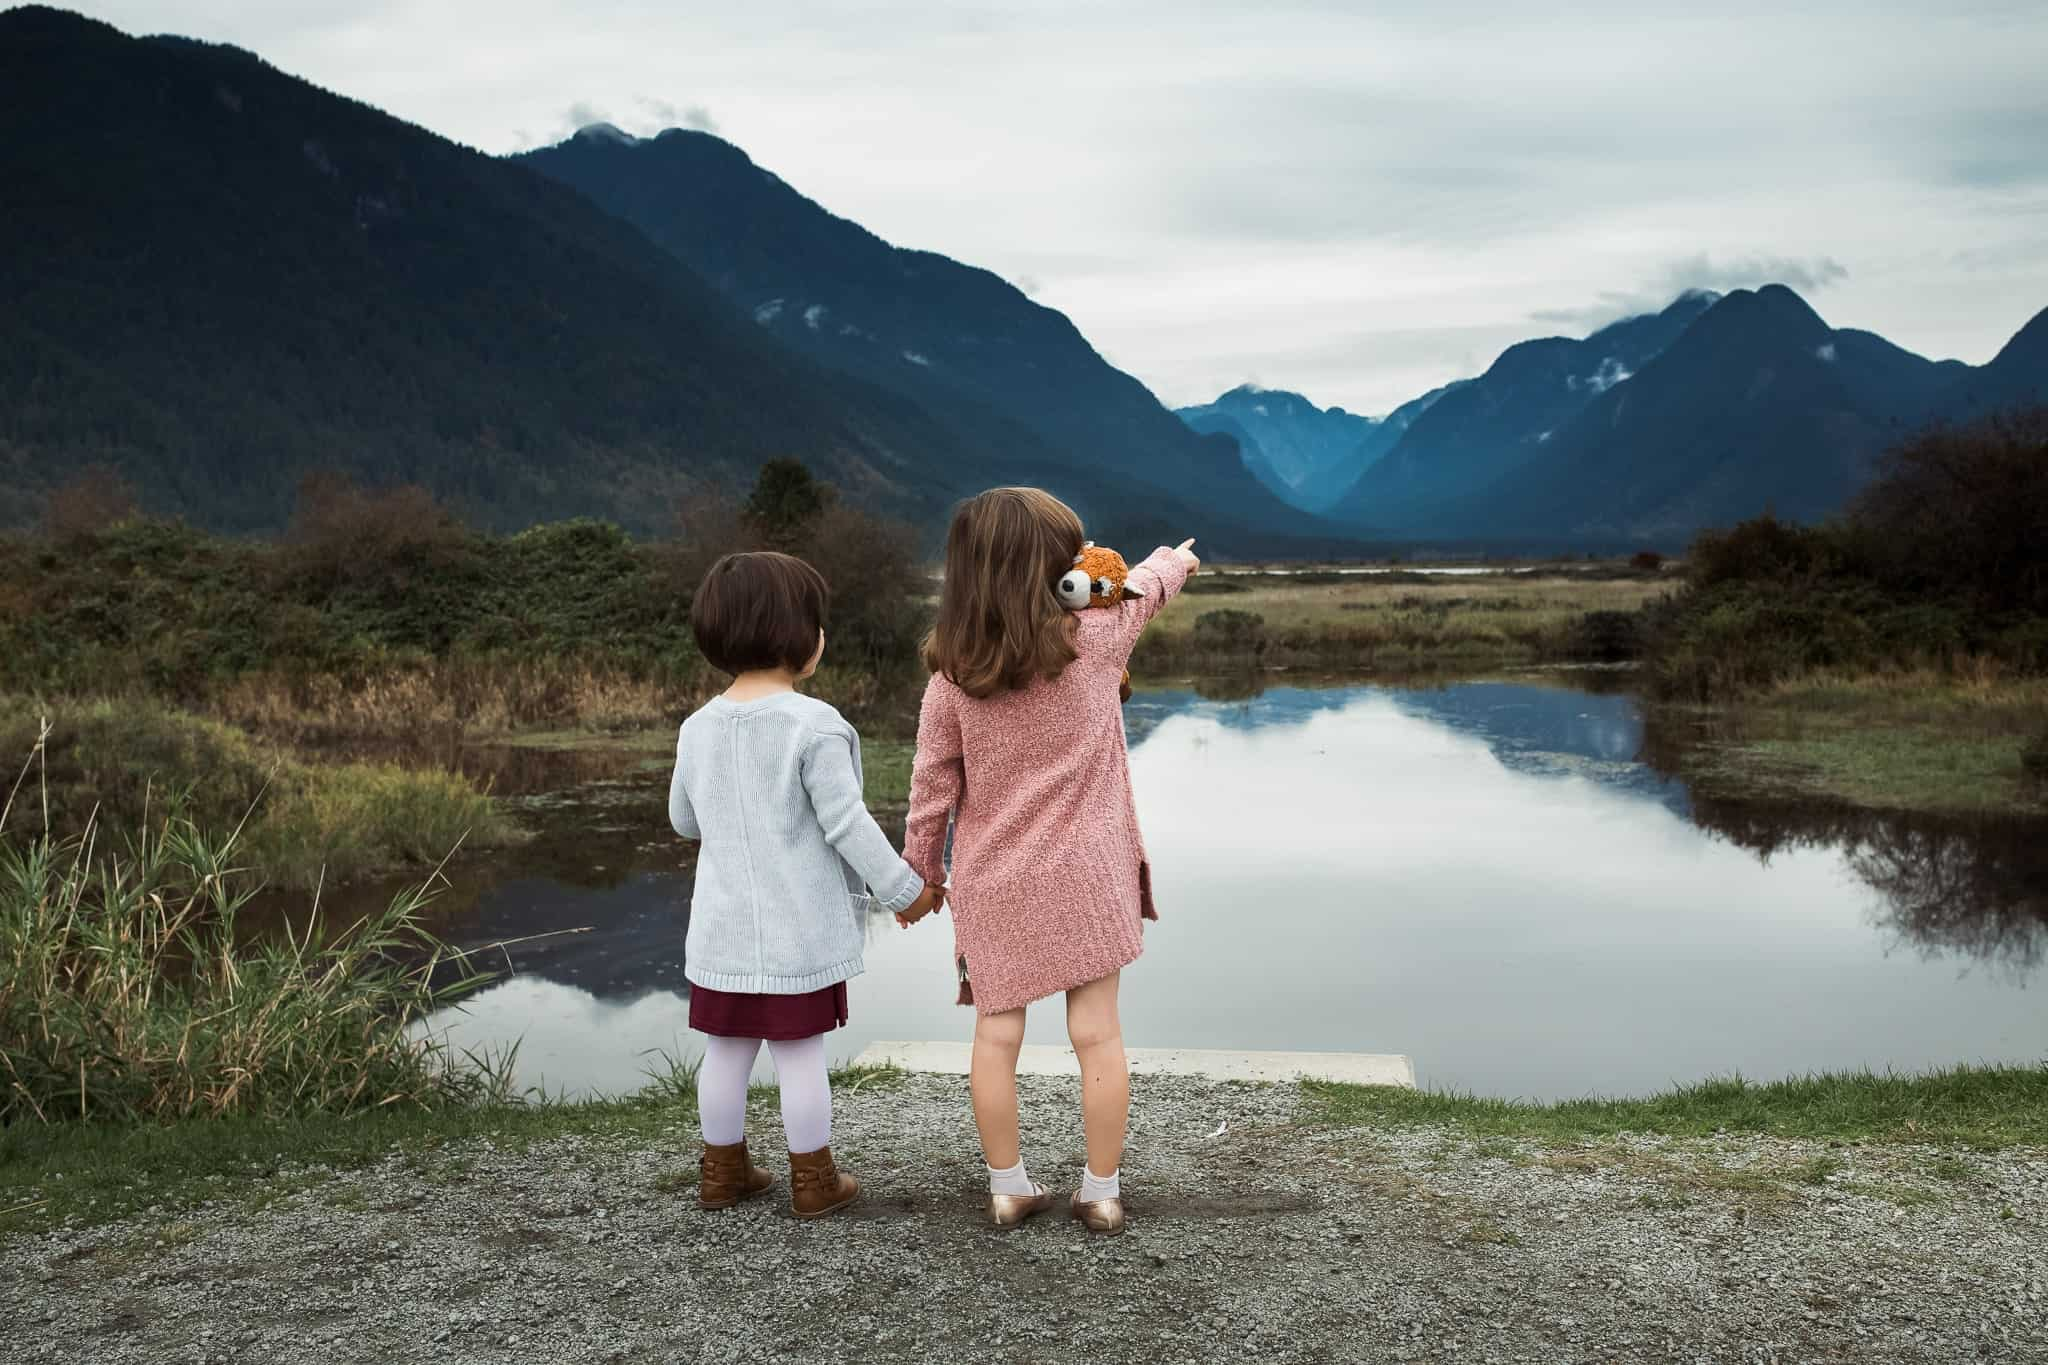 two toddler girls holding hands staring out across a lake at the mountains